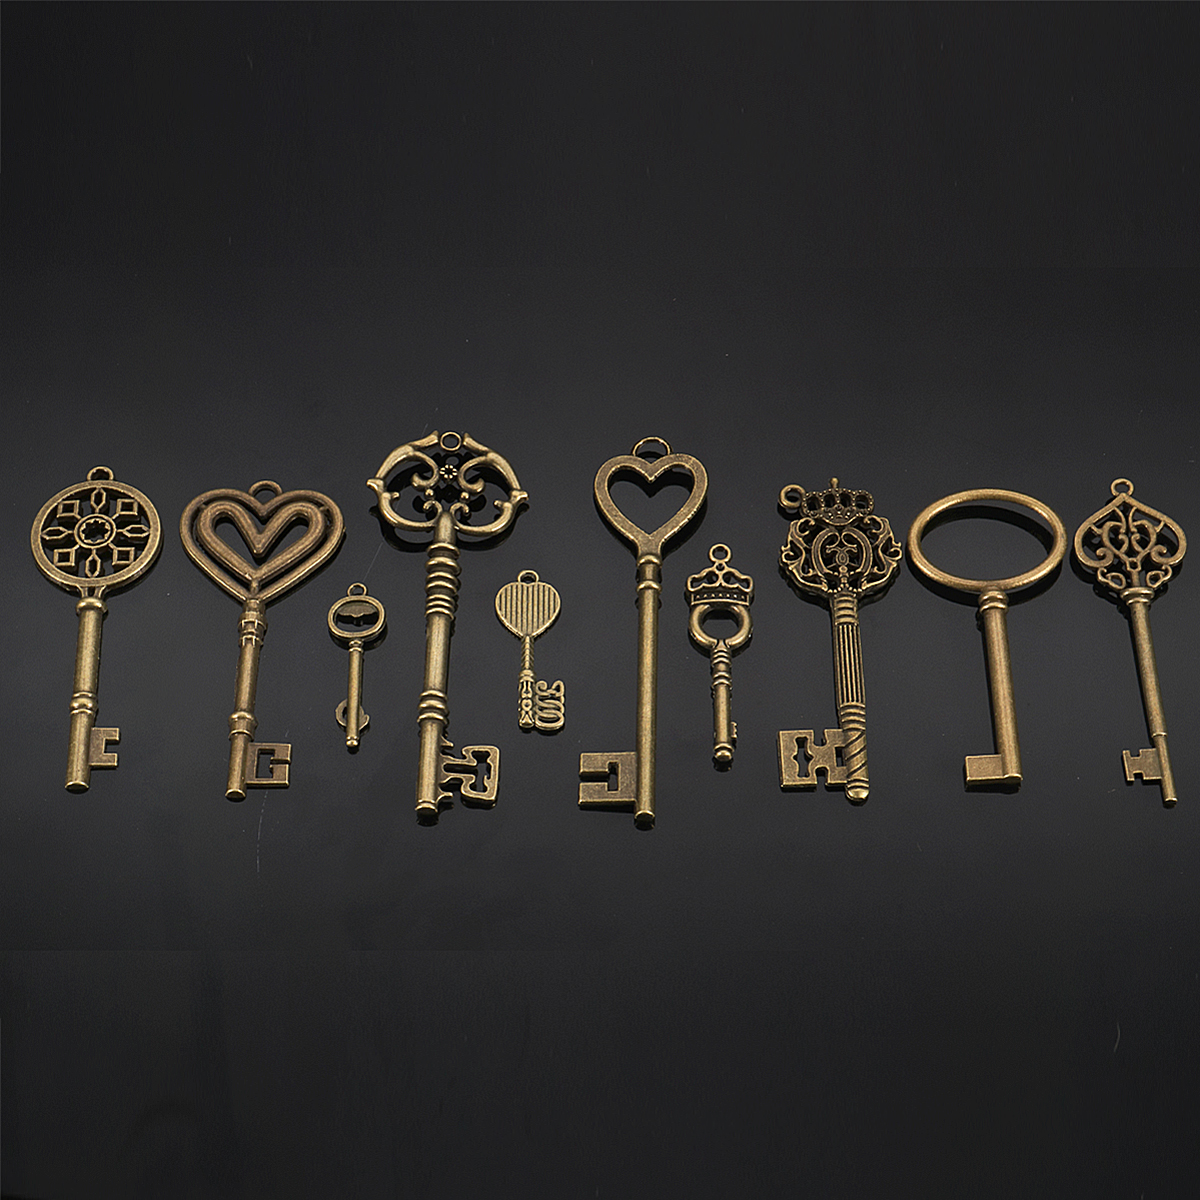 10Pcs Mixed Bronze Key Necklace Pendant Charm DIY